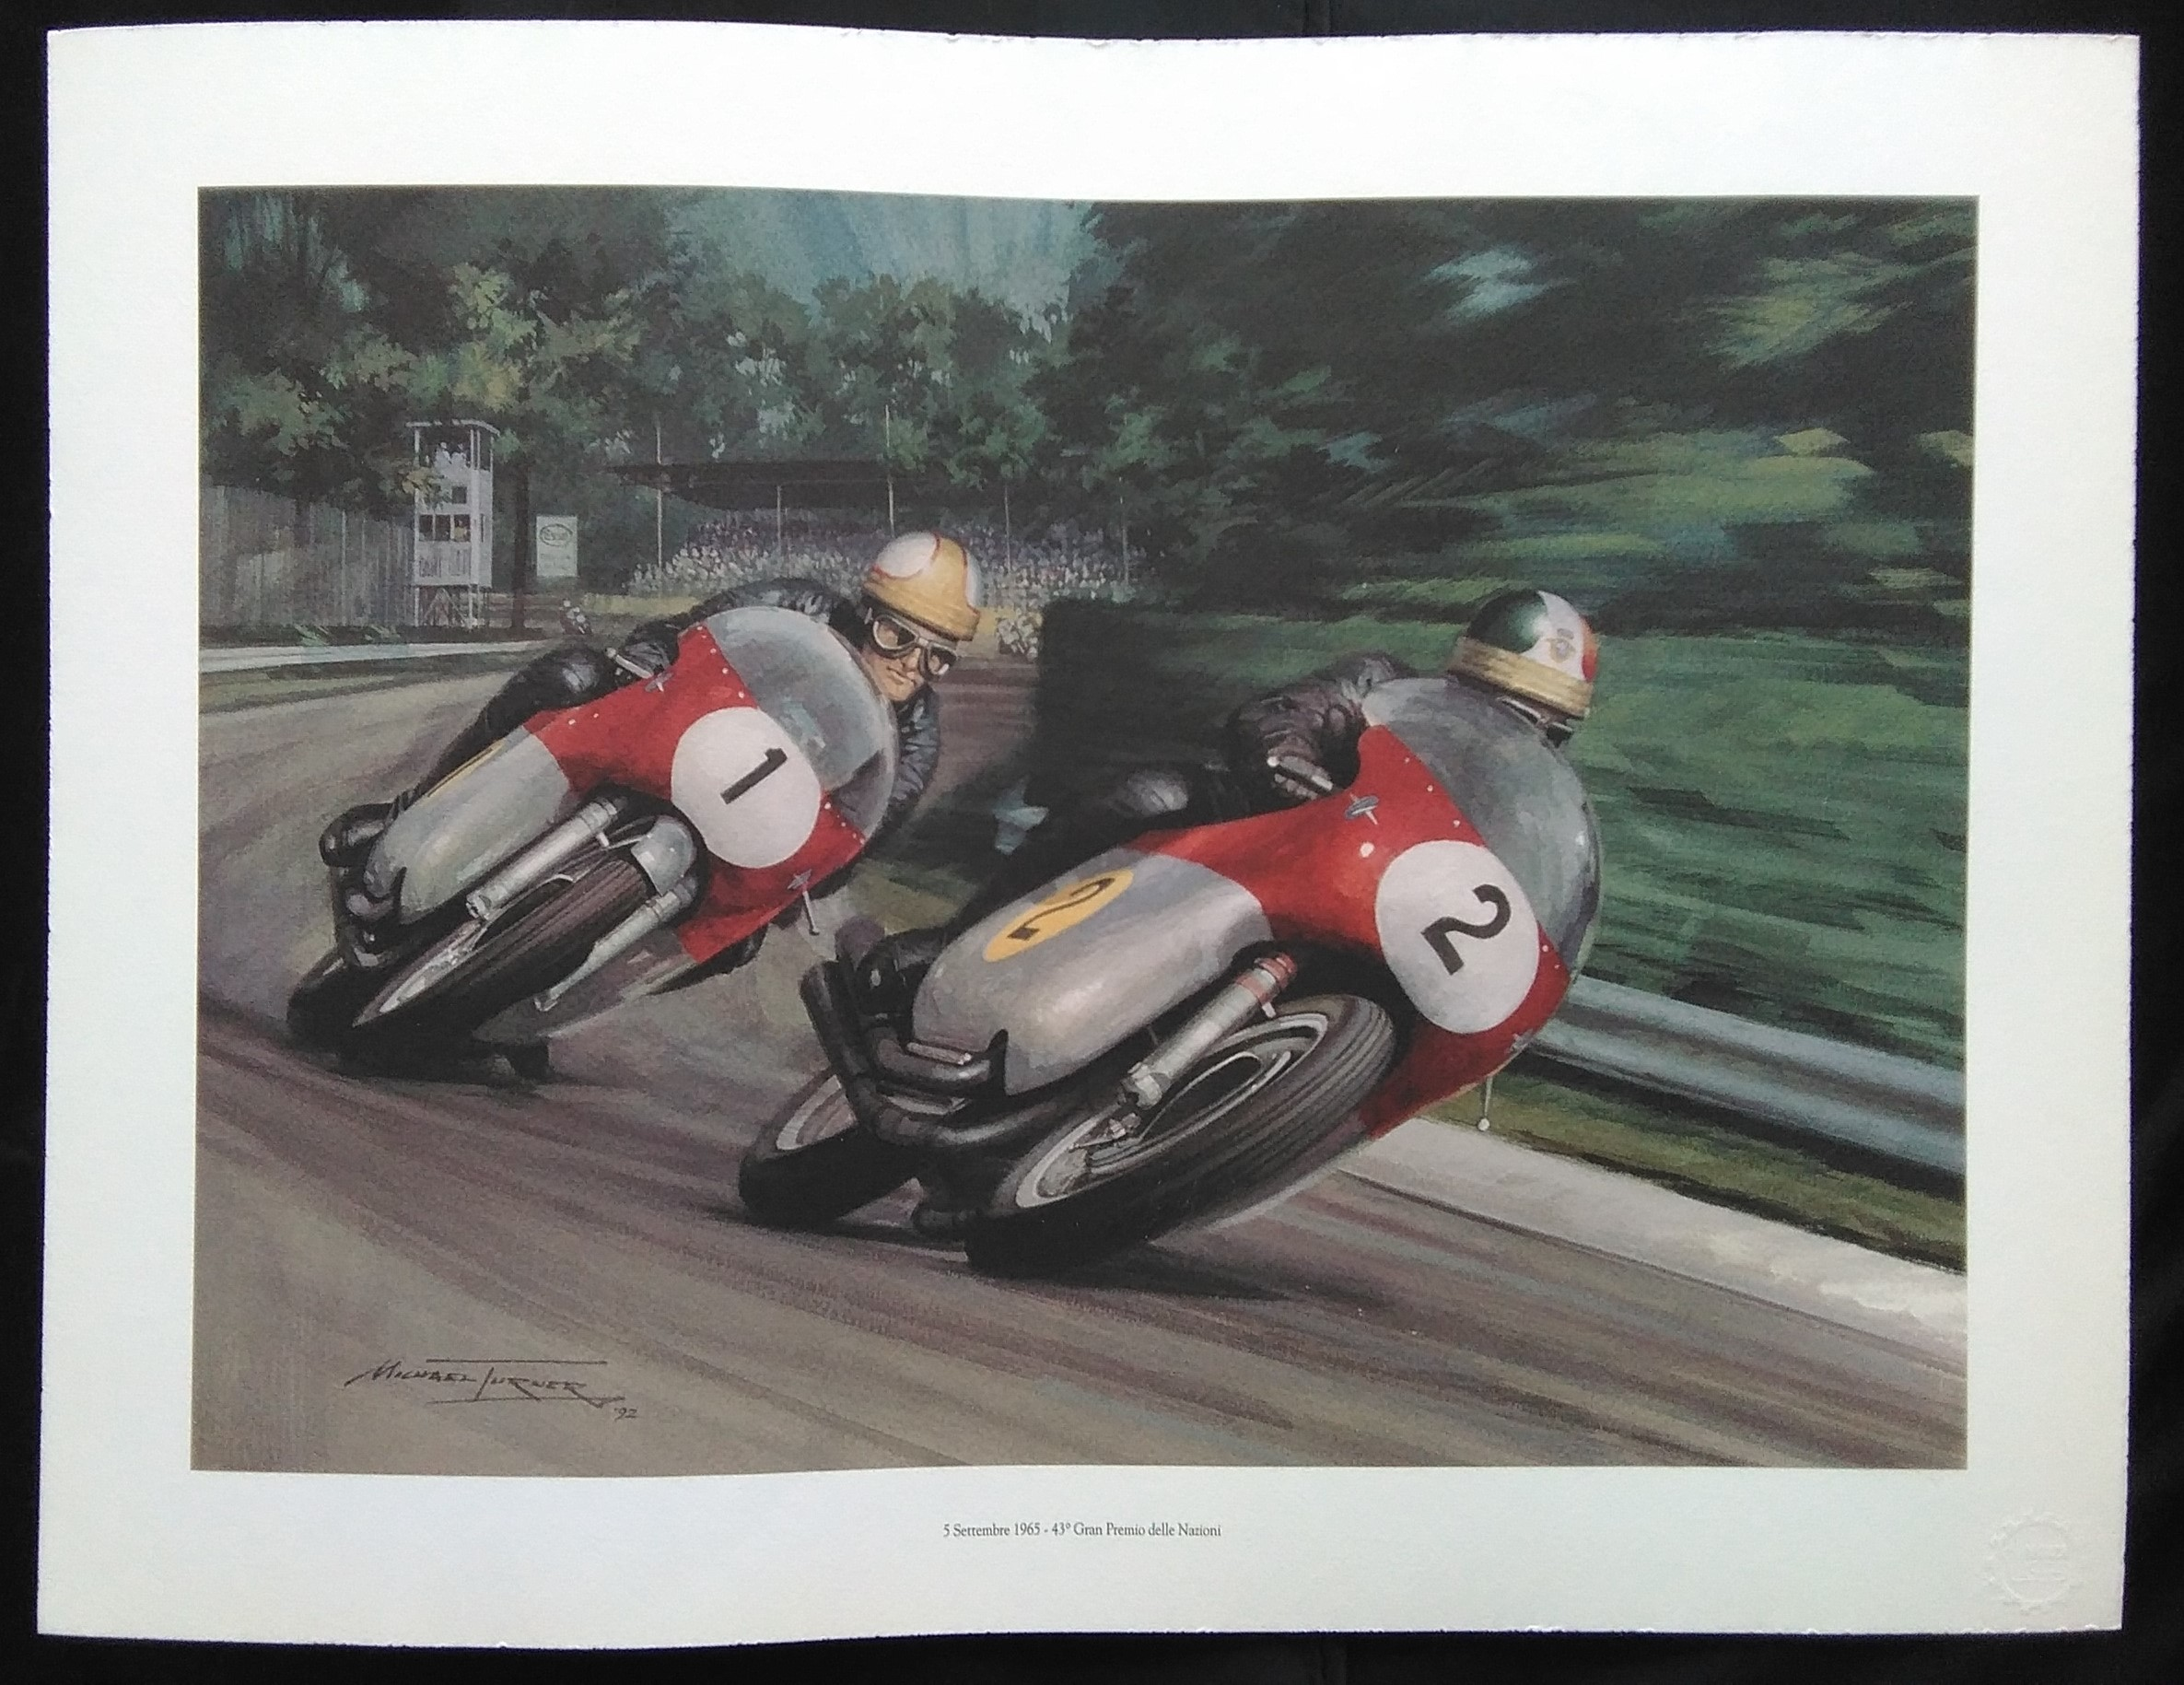 Agostini and Hailwood Monza 1965.